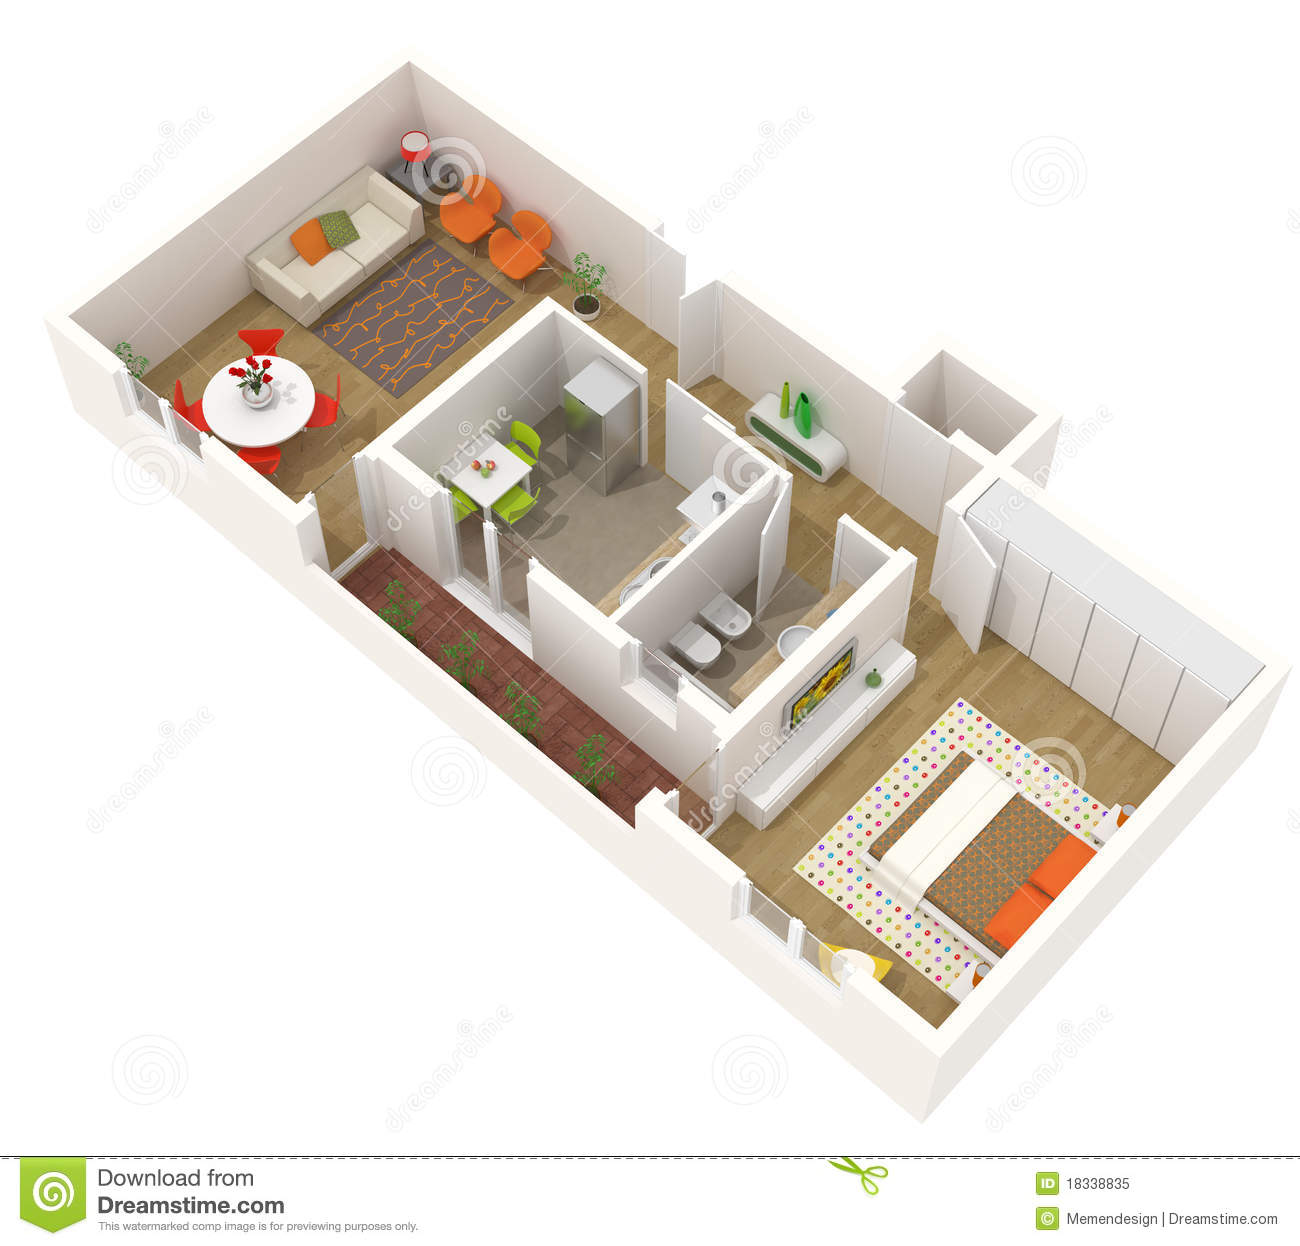 Apartment design 3d floor plan stock illustration for Apartment floor plans designs